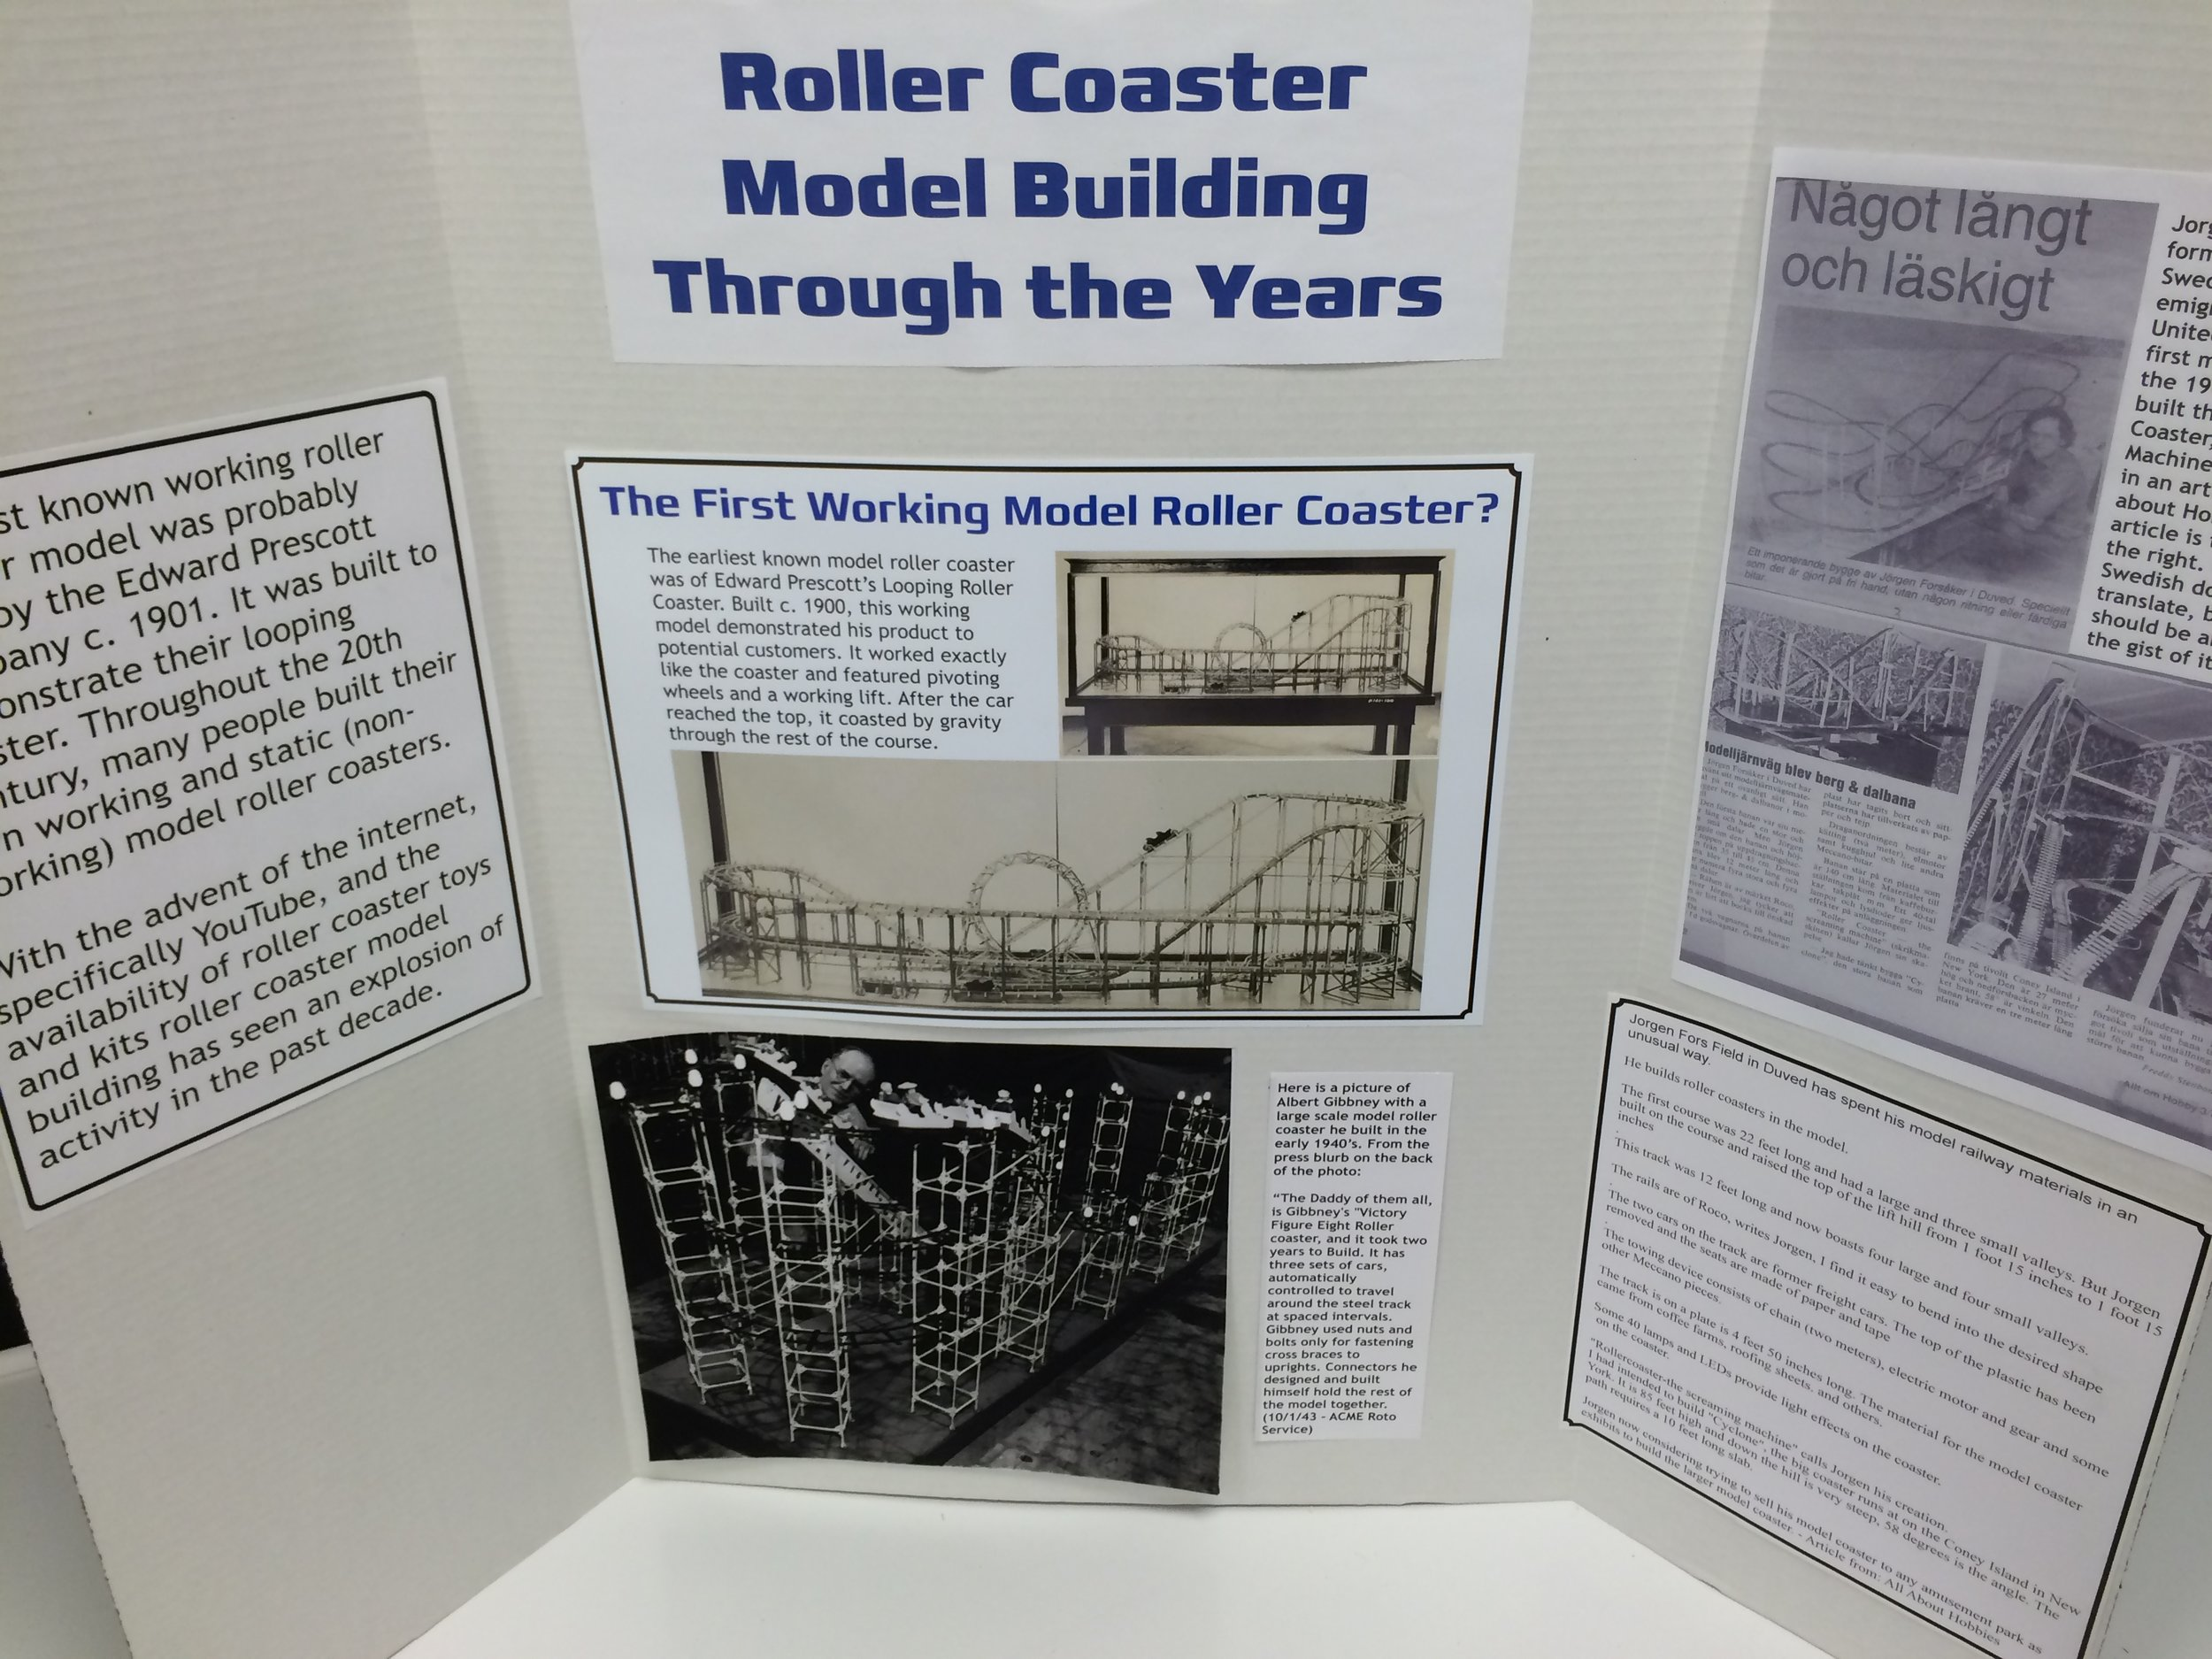 Exhibit: Model Coaster Building Through the Years